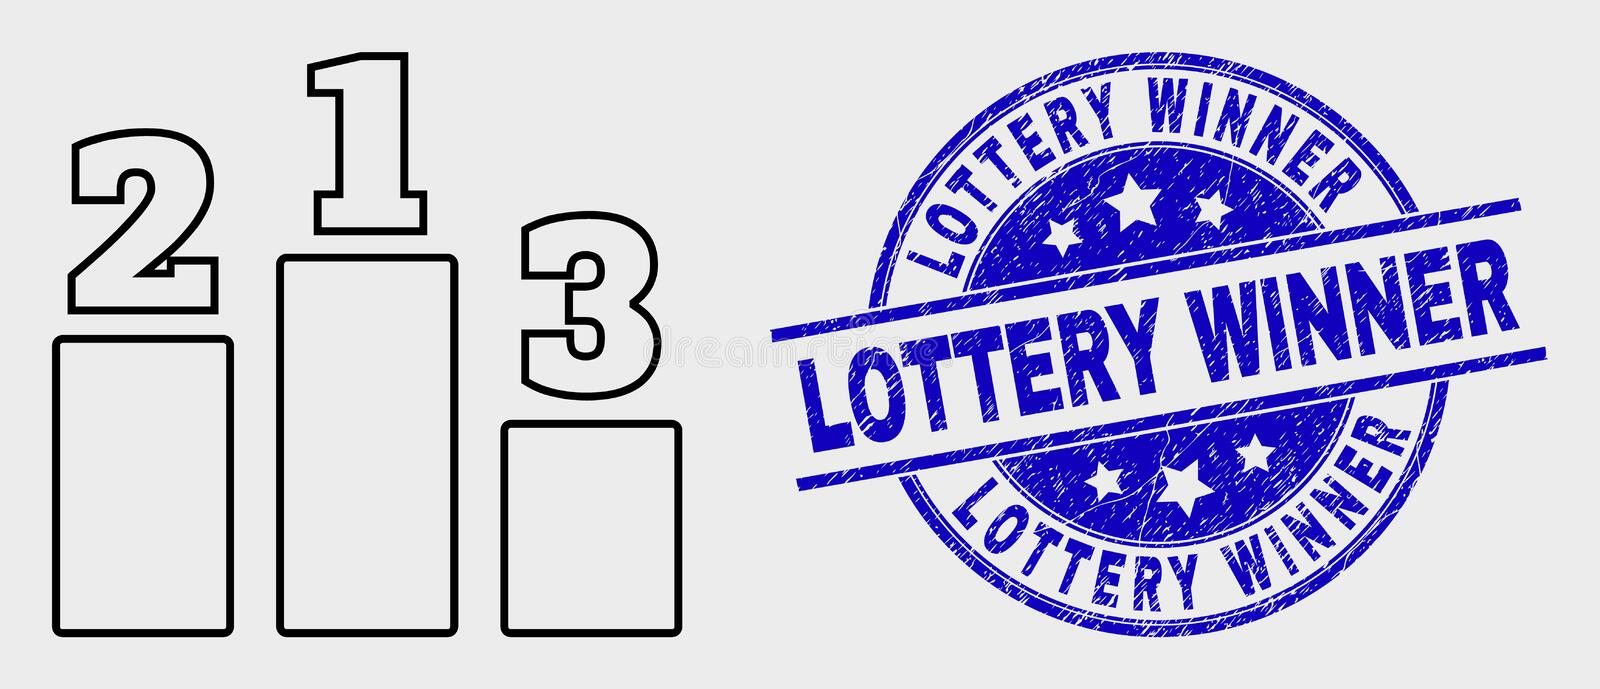 Vector Stroke Prize Places Icon and Distress Lottery Winner Stamp stock illustration